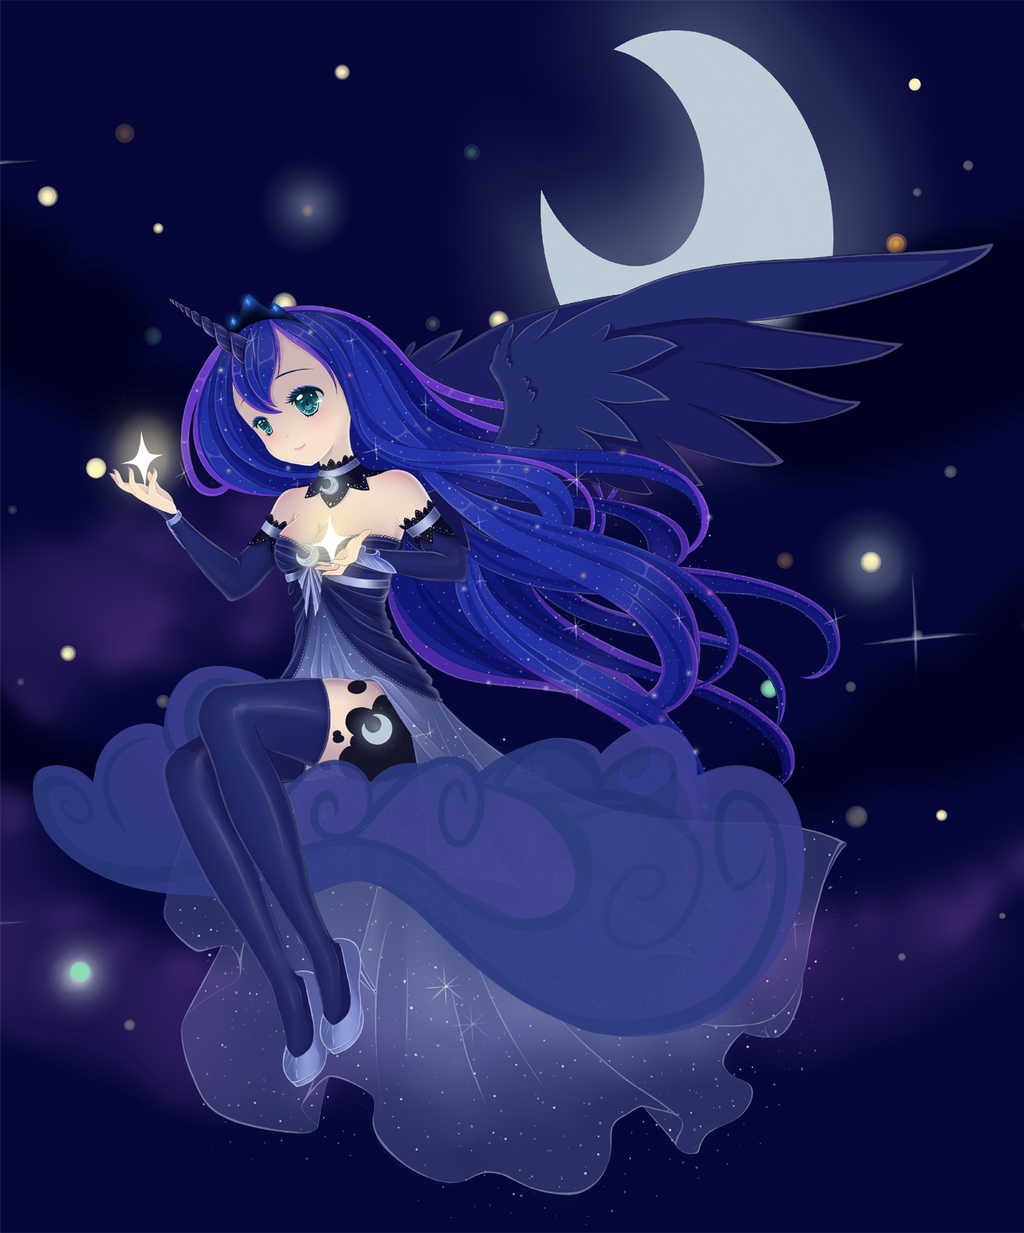 mlp__princess_luna_by_sylphlox-d6o2805.p